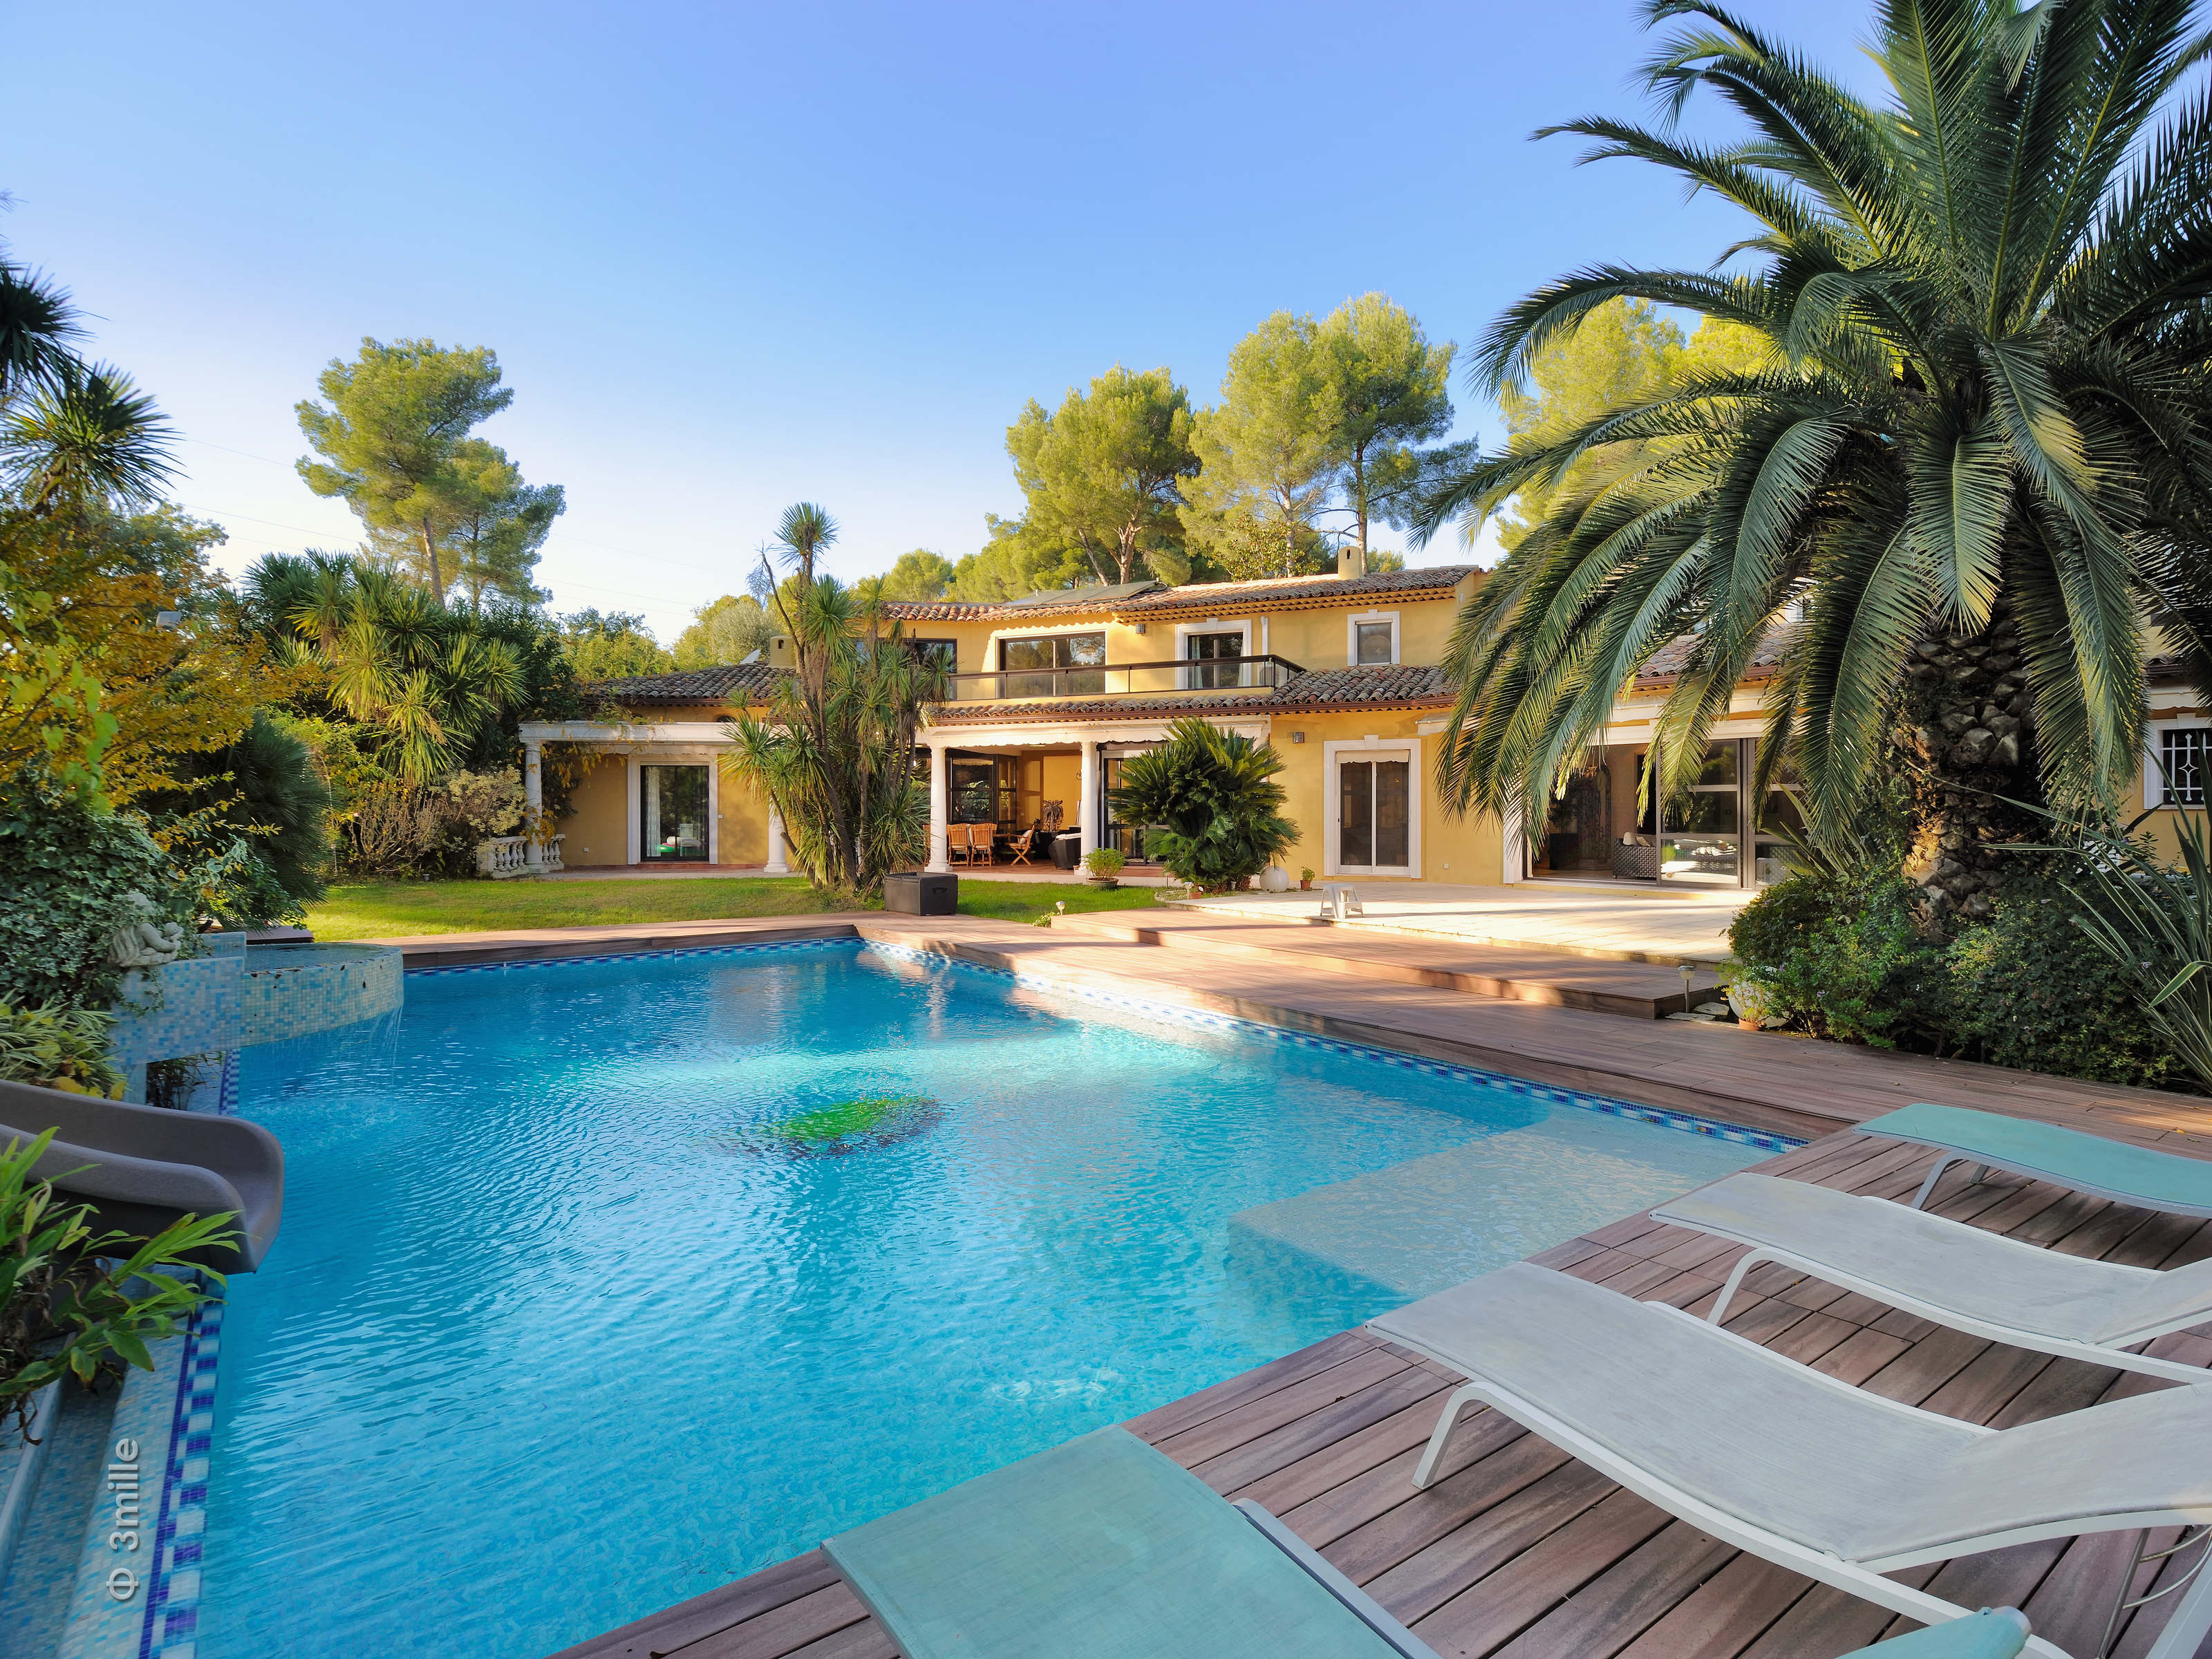 Multi-Family Home for Sale at PRIVATE DOMAIN - NEWLY REFRESHED PROPERTY Mougins, Provence-Alpes-Cote D'Azur 06250 France